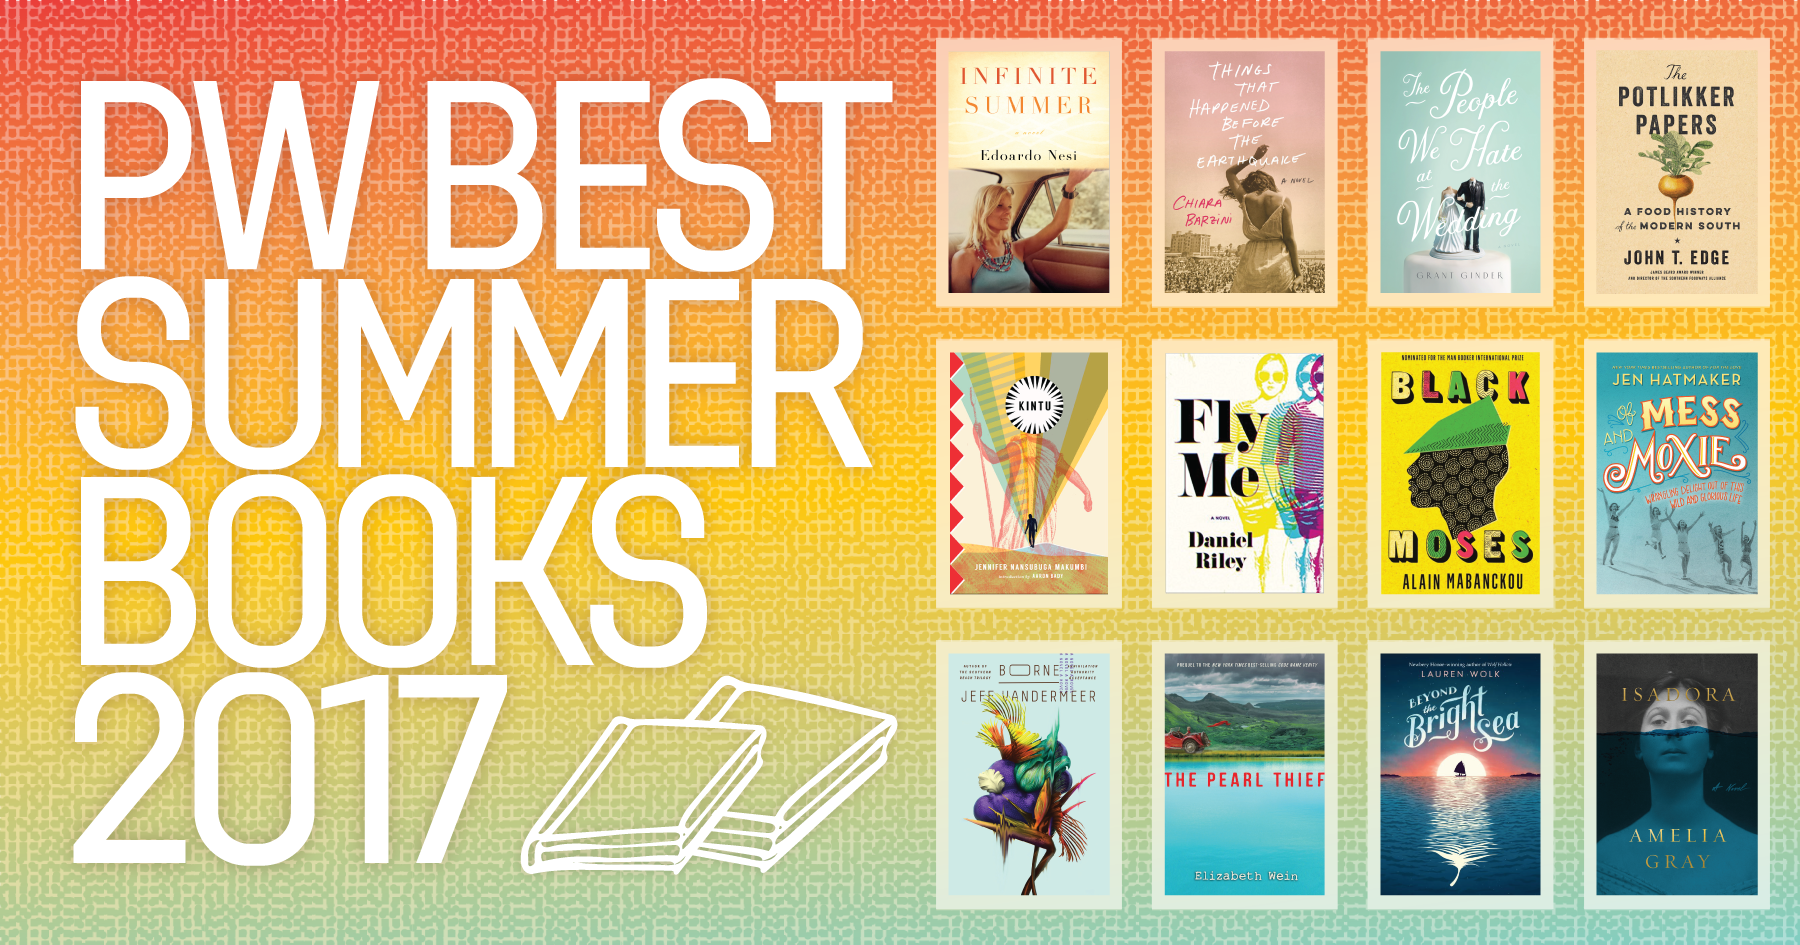 pw best books of summer.png